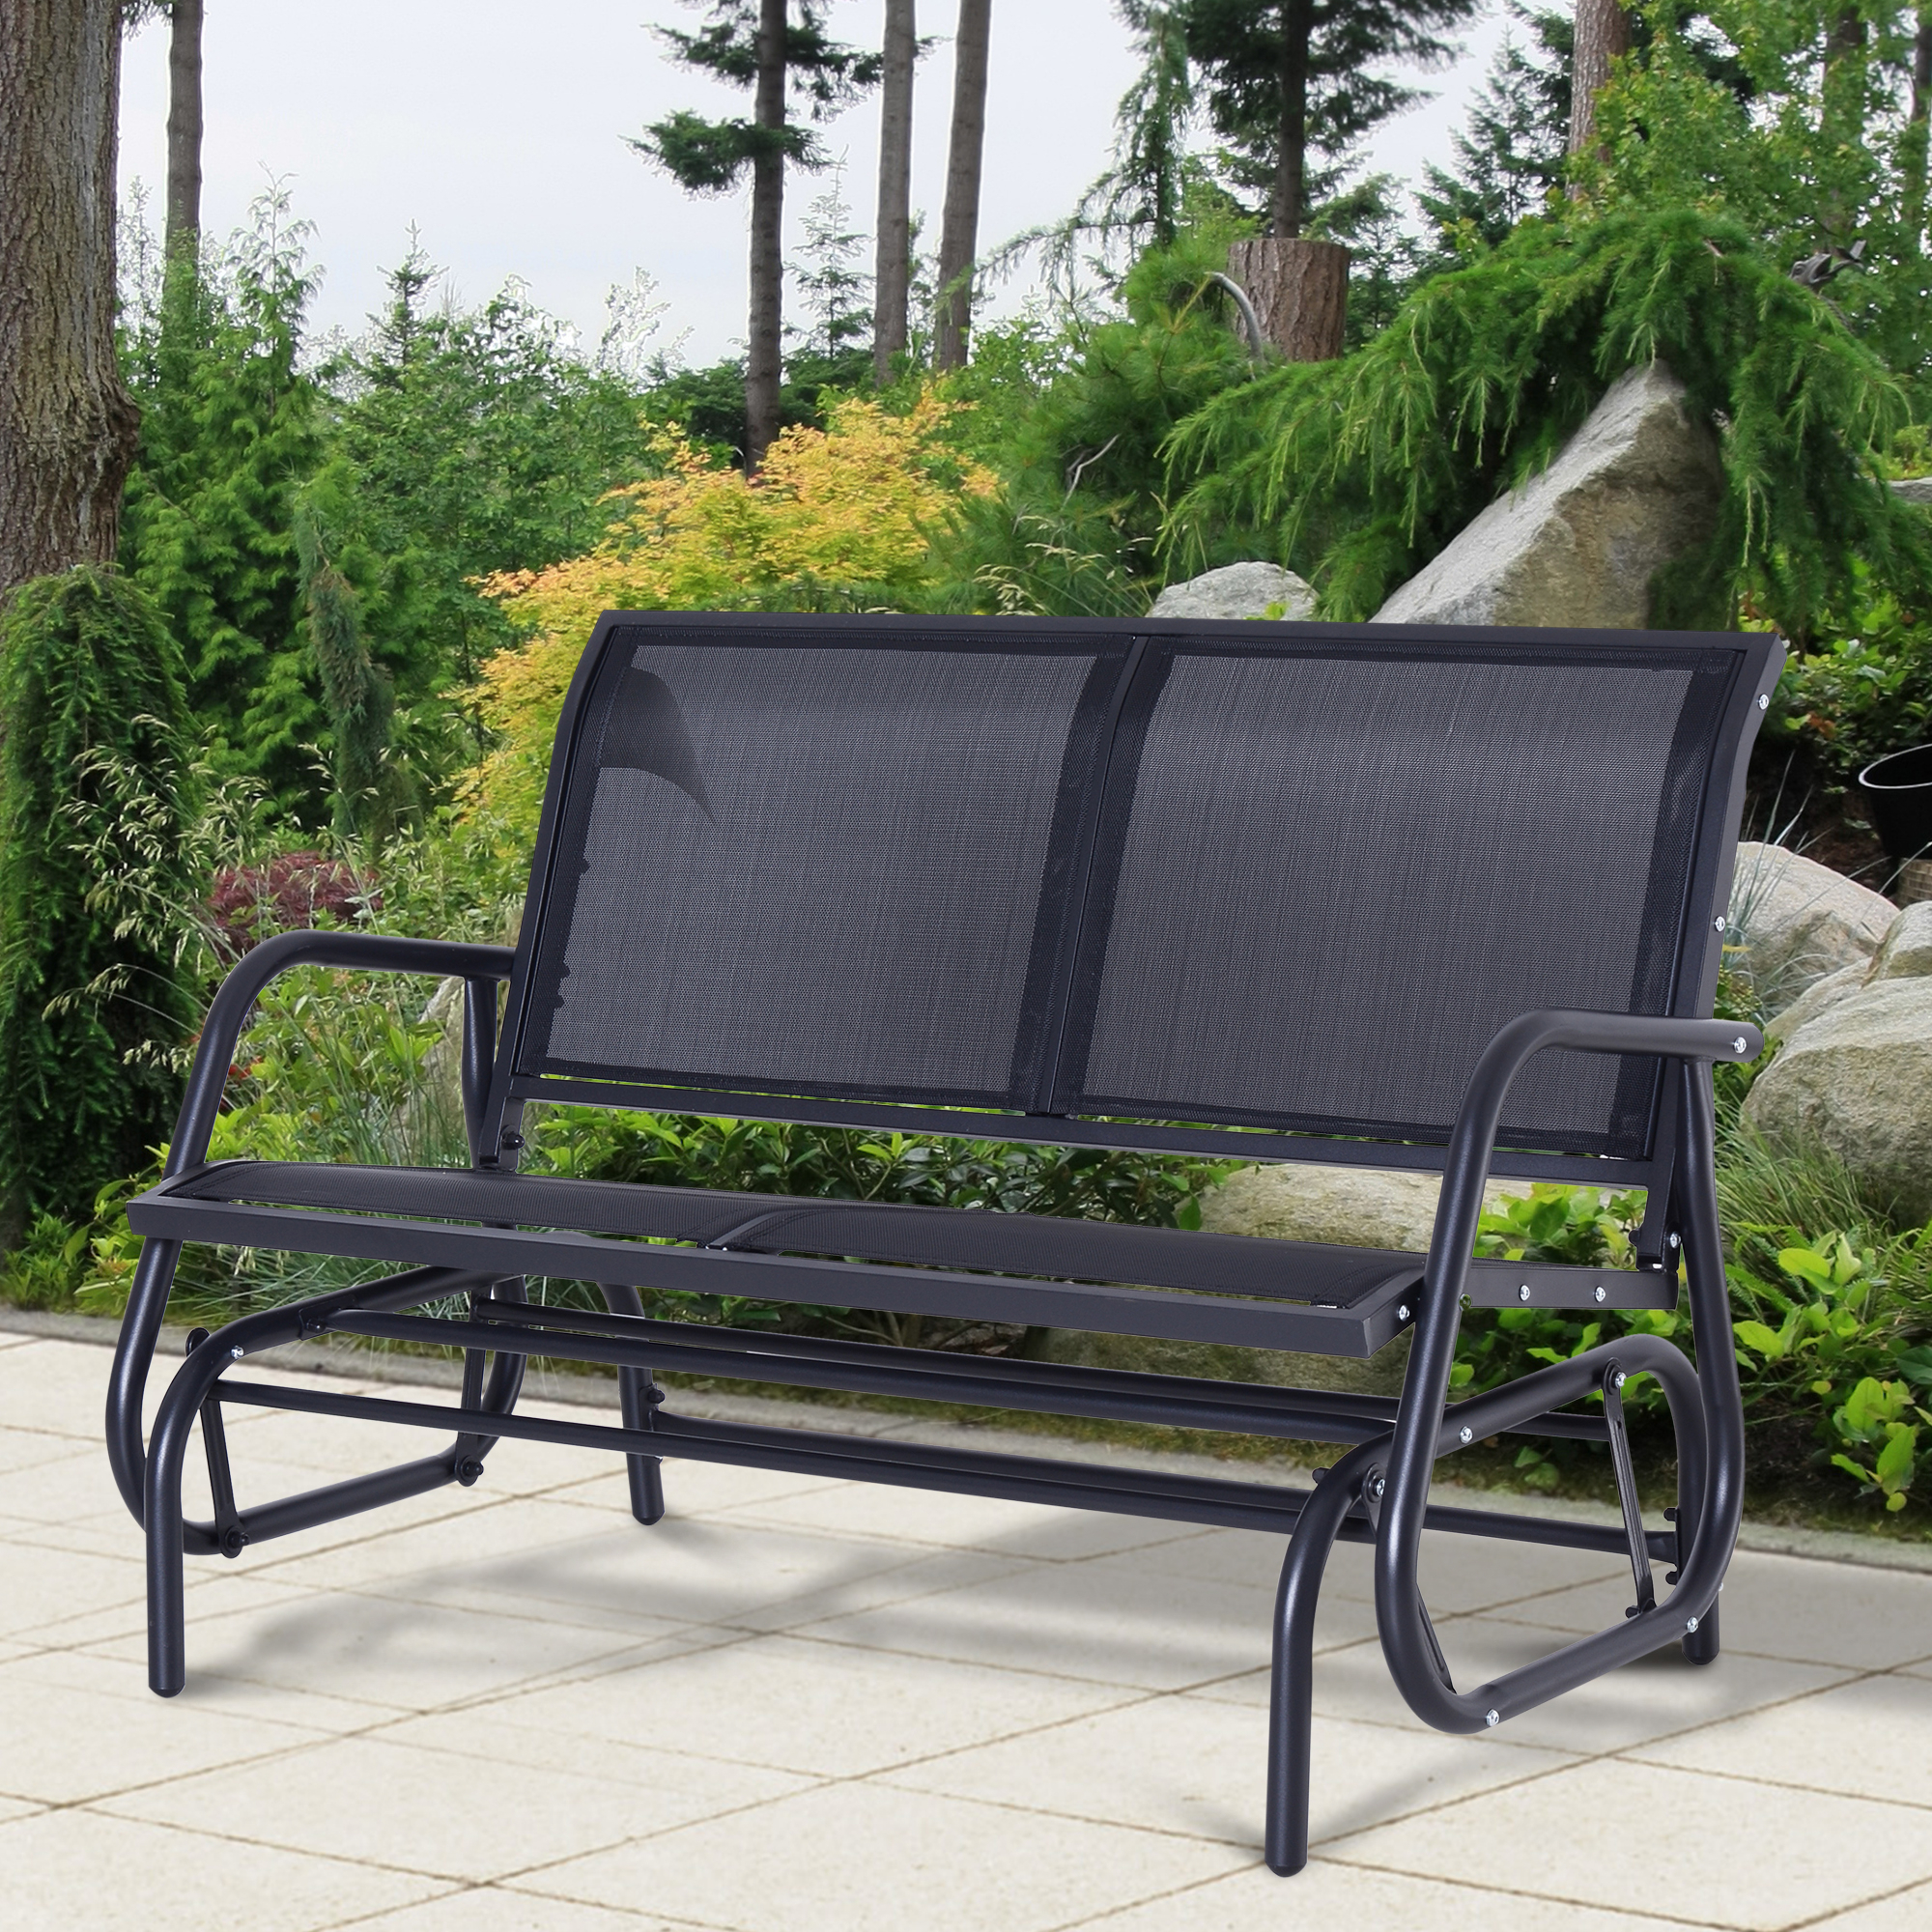 Preferred Black Outdoor Durable Steel Frame Patio Swing Glider Bench Chairs In Details About Outsunny Patio Garden Glider Bench 2 Person Double Swing  Chair Rocker Deck Black (View 22 of 25)